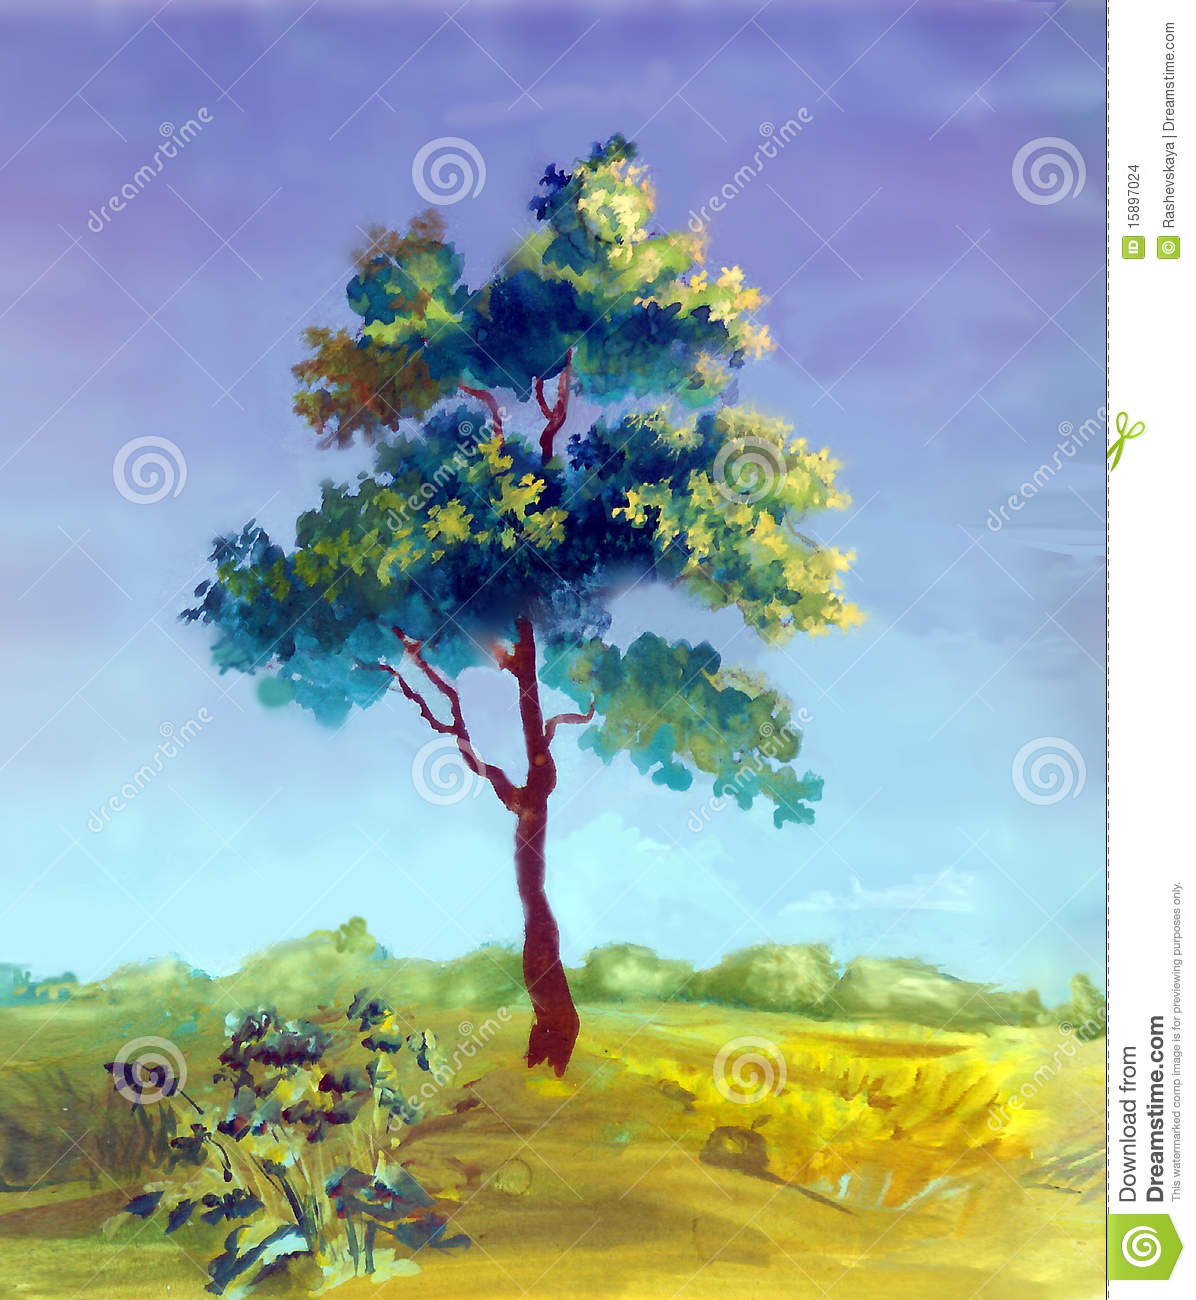 Watercolor Painting Of A Tree Stock Images - Image: 15897024